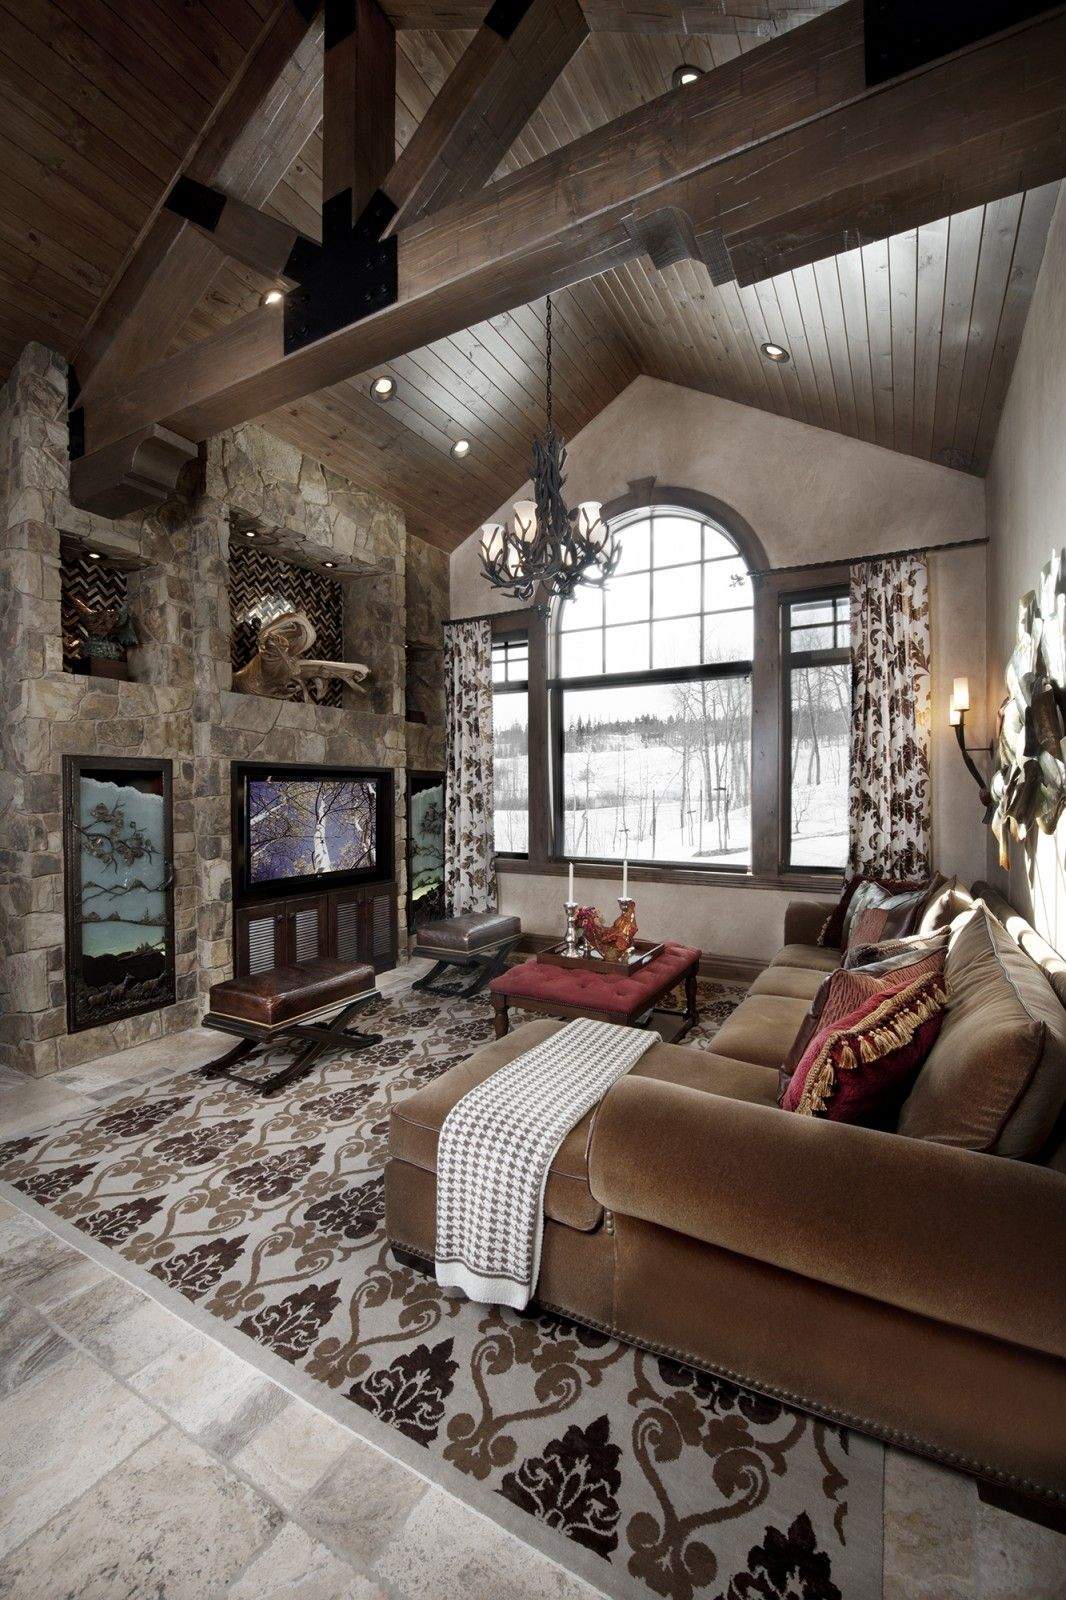 Rustic Interior Homes   Get Different Style With Rustic Interiors